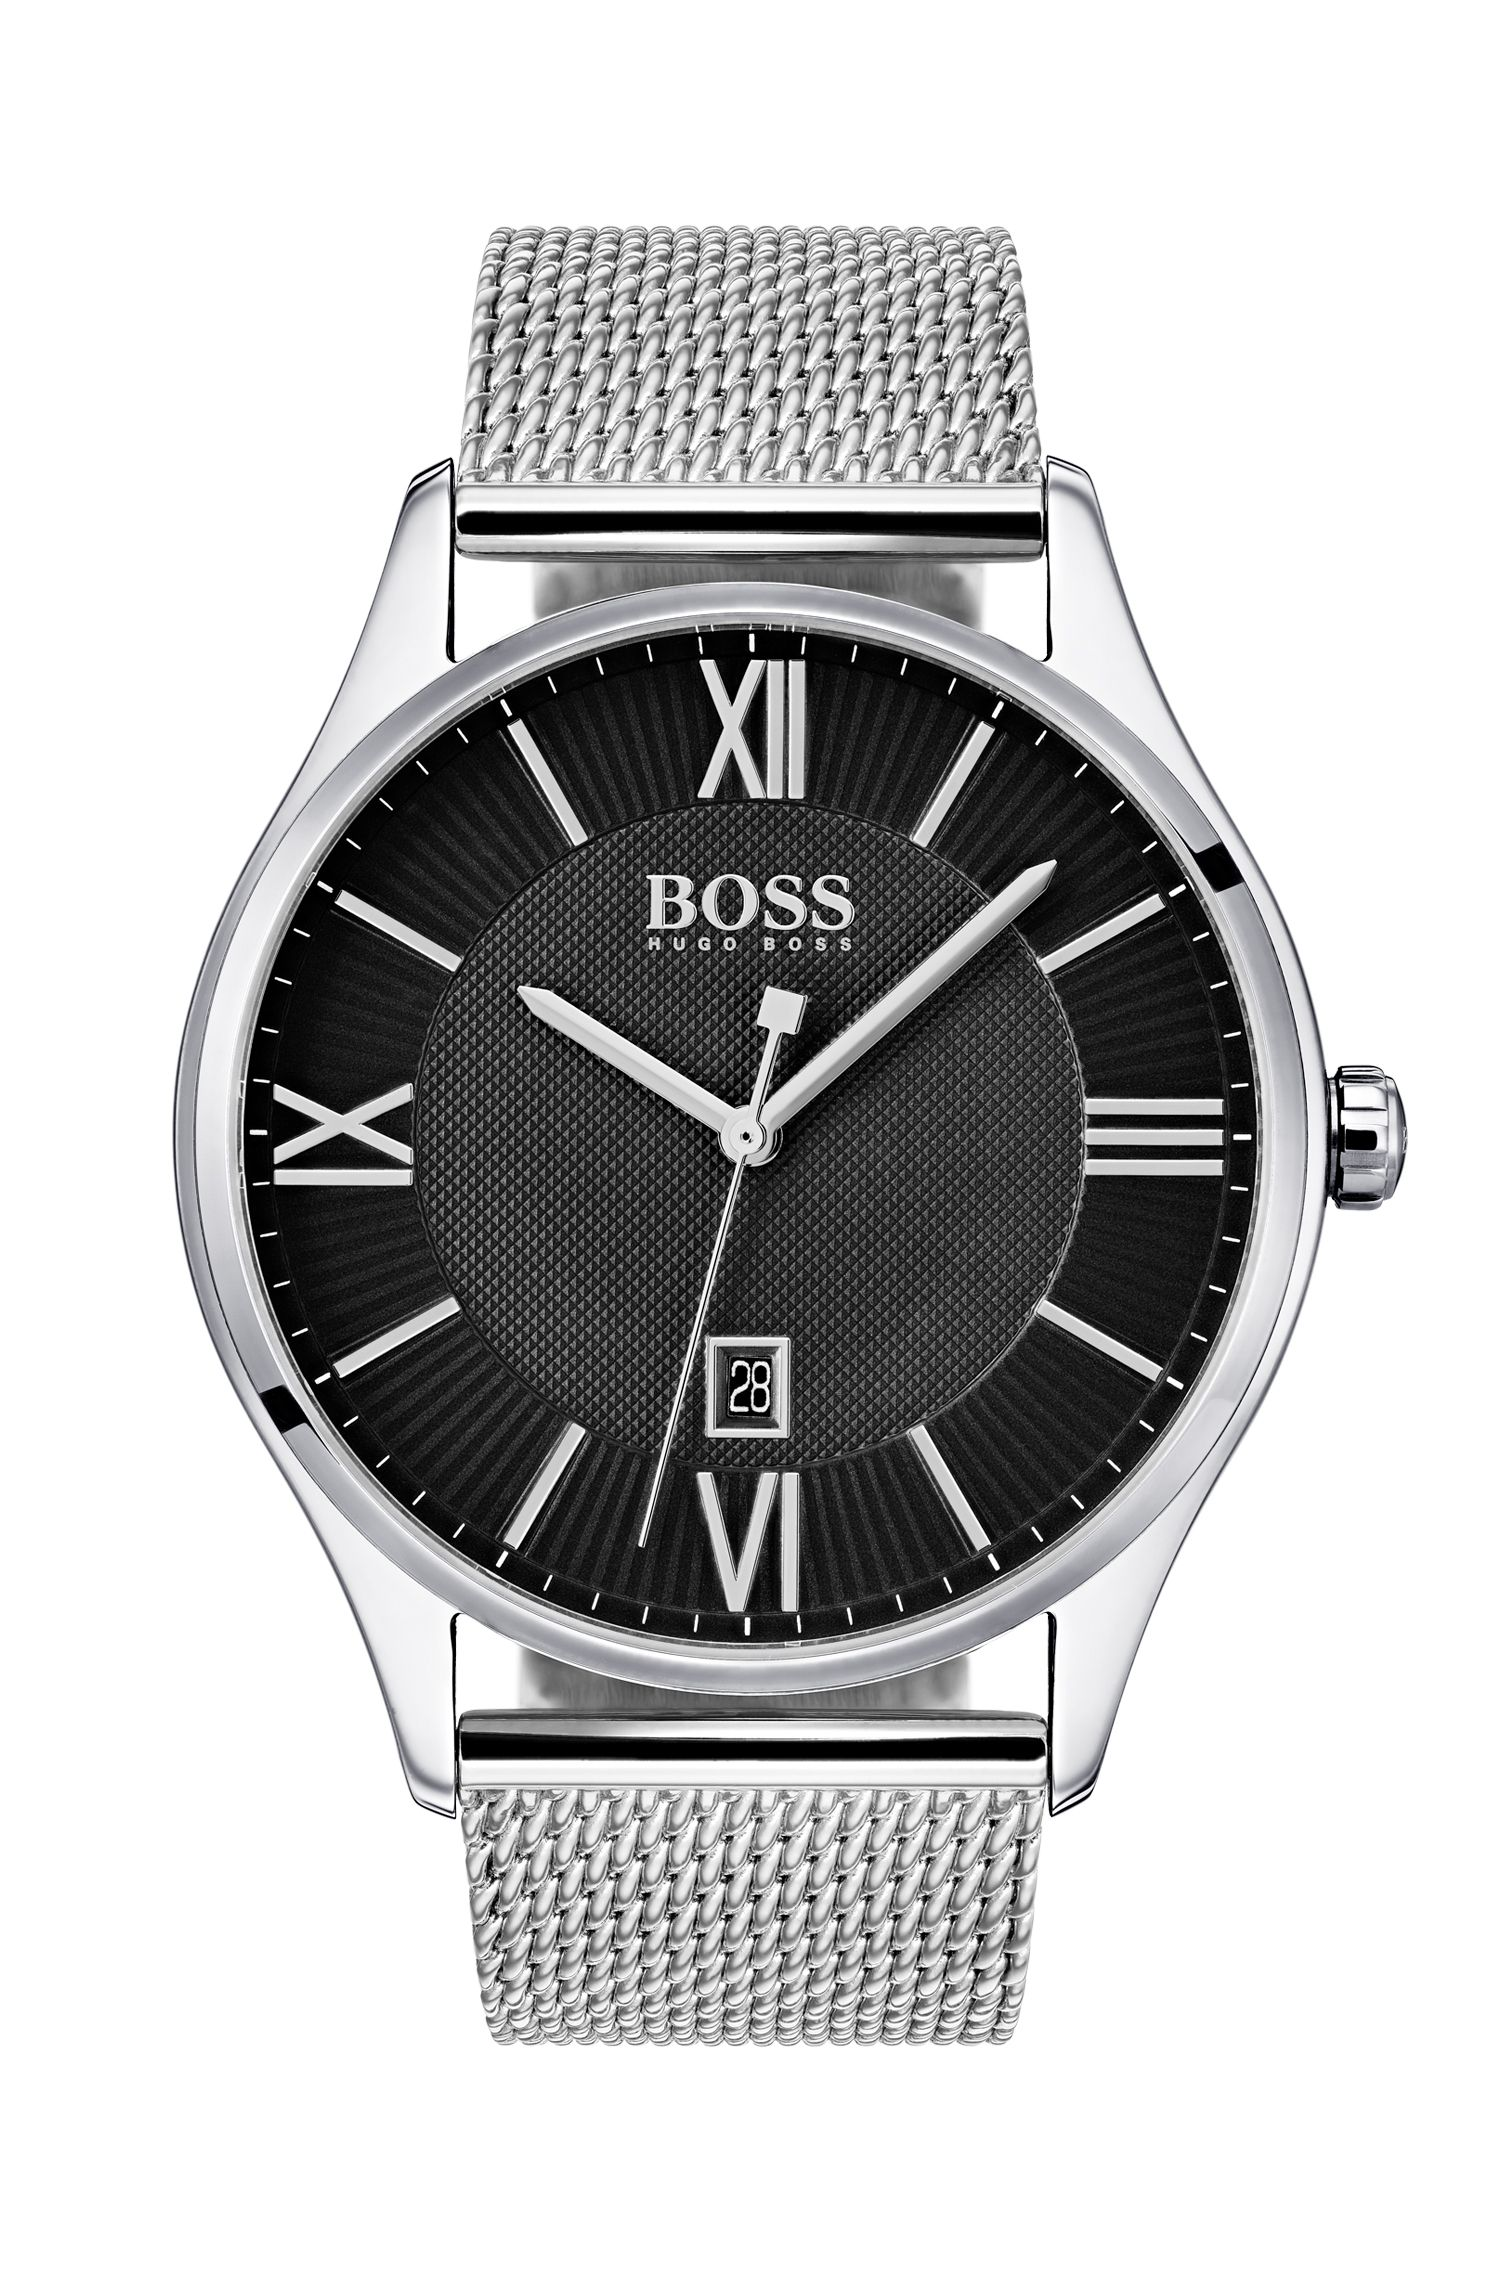 Two-Tier Black Dial Watch with Mesh Bracelet, Assorted-Pre-Pack